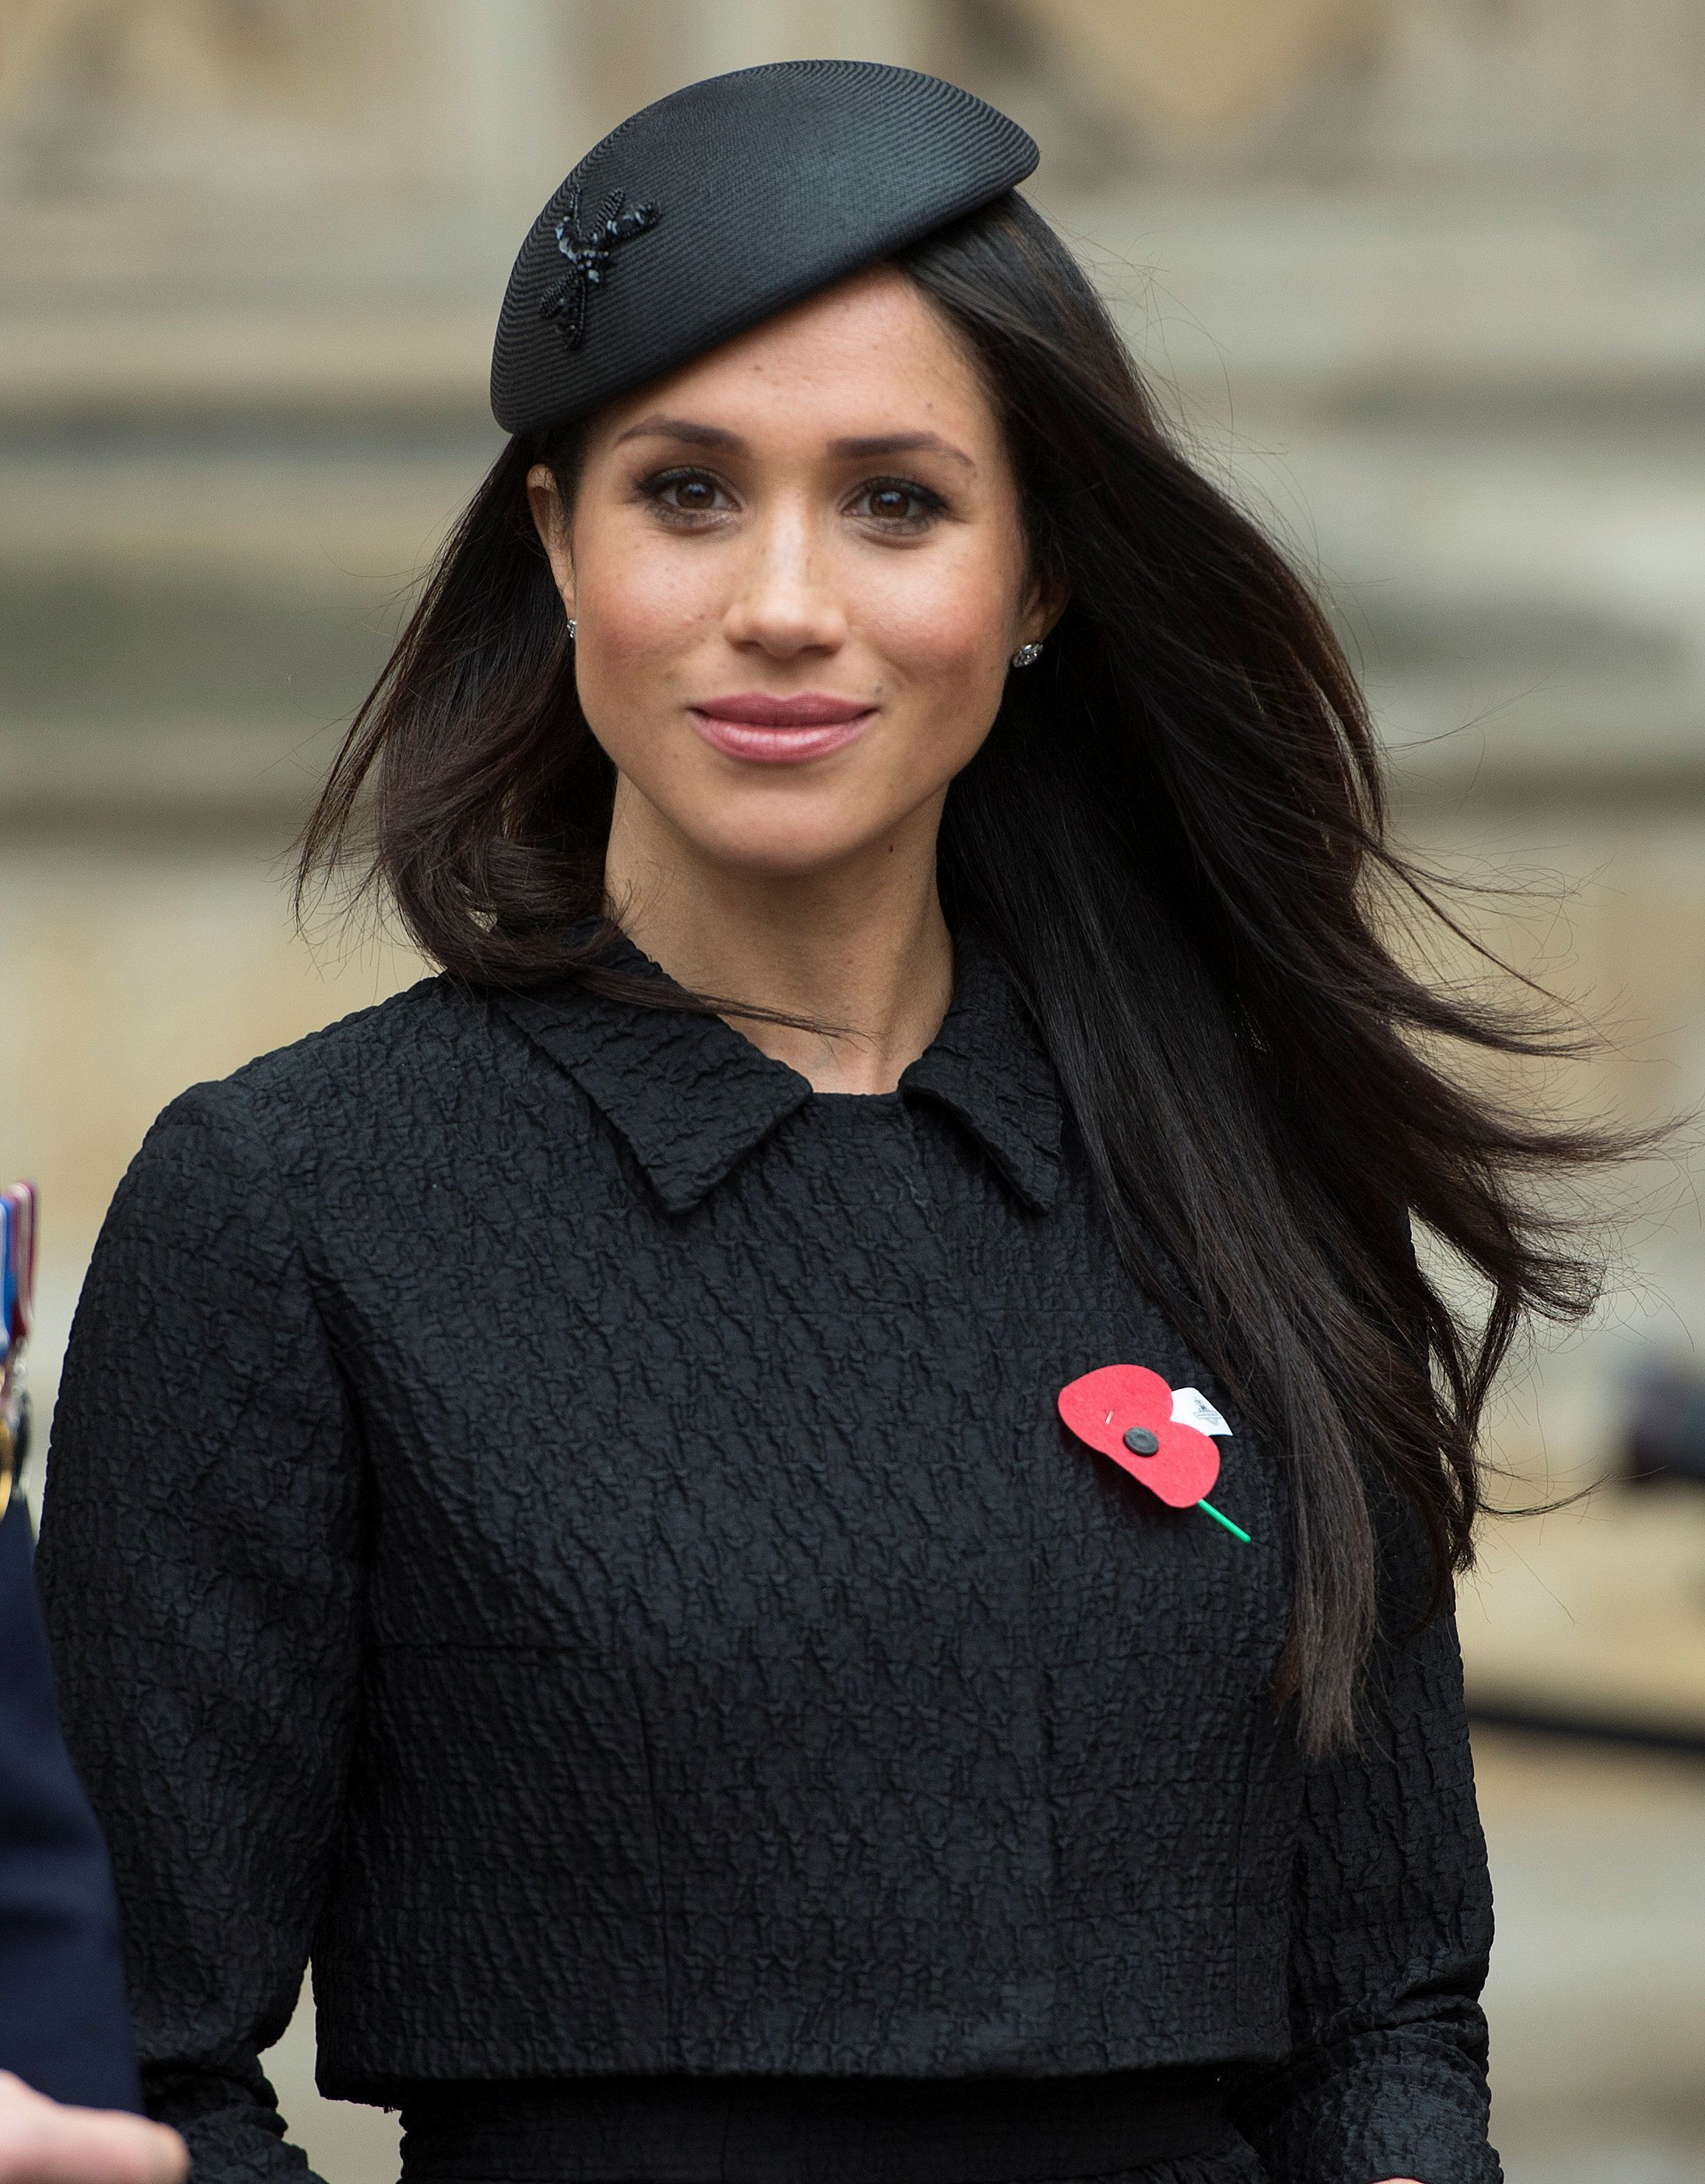 Meghan Markle, the fiancee of Britain's Prince Harry, attends a Service of Thanksgiving and Commemoration on ANZAC Day at Westminster Abbey in London, Britain, April 25, 2018. Eddie Mulholland/Pool via Reuters